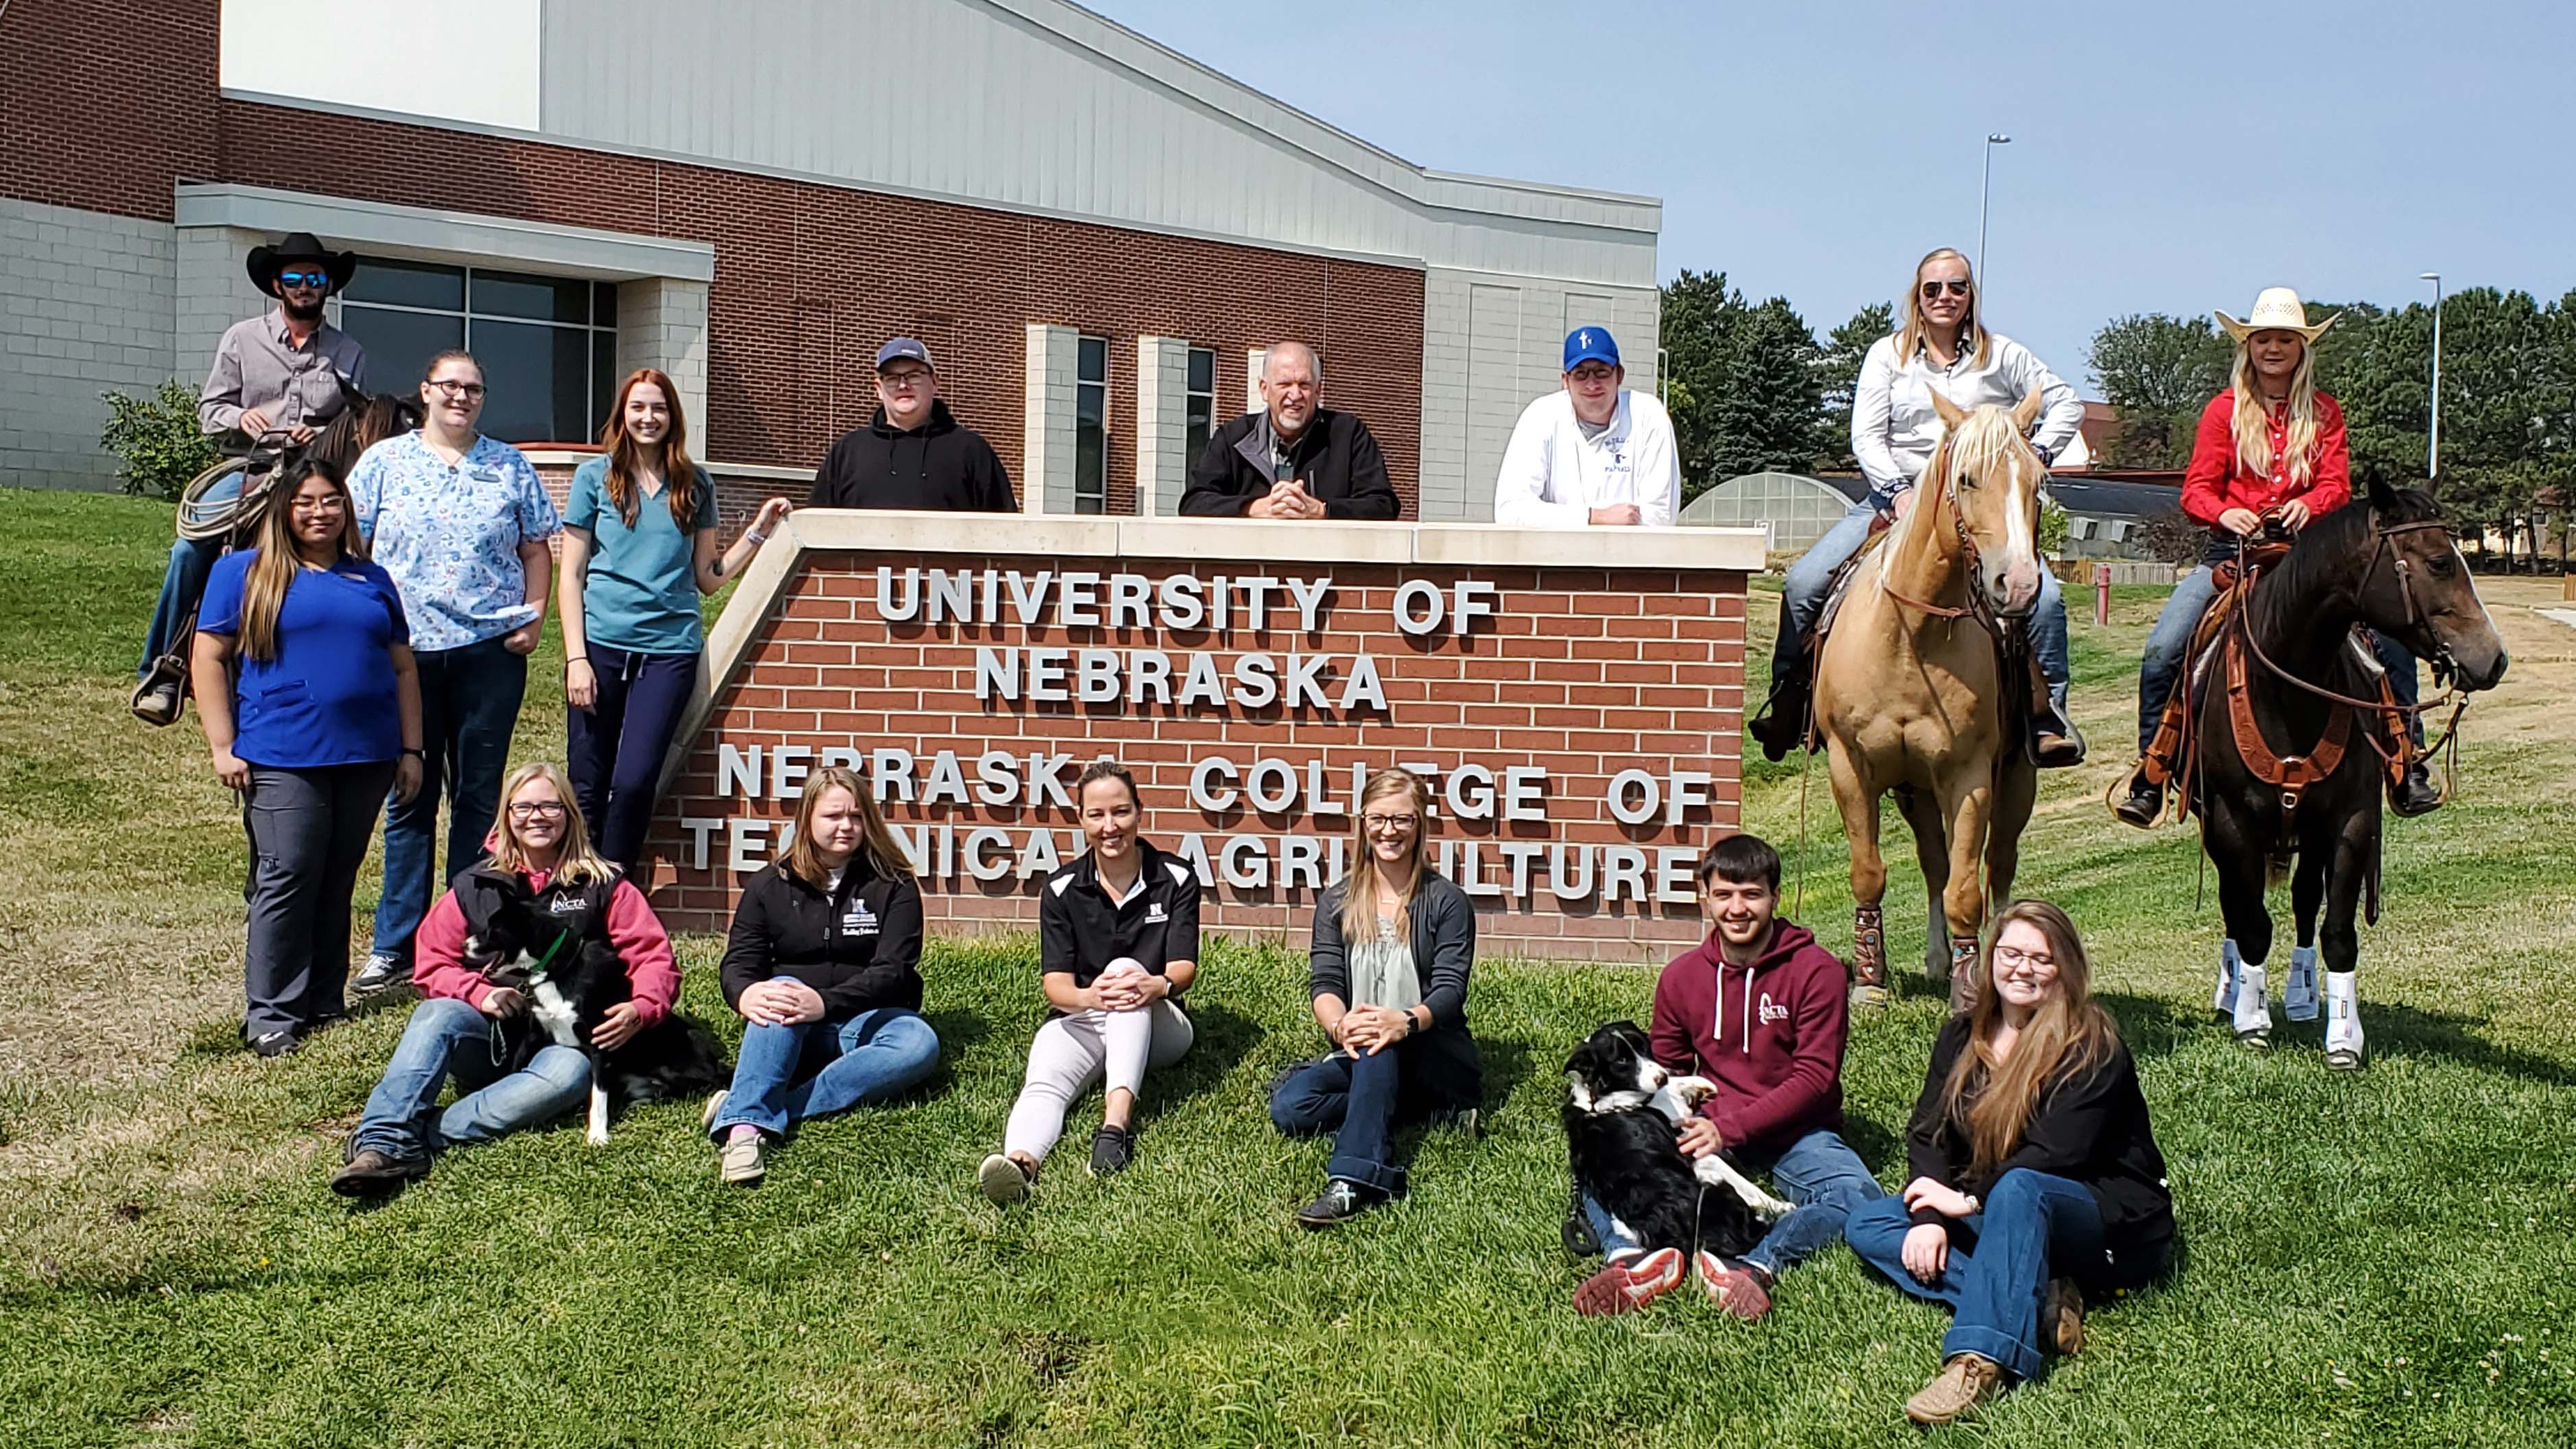 Aggies join NCTA Dean Larry Gossen (standing center) in representing students, staff and campus organizations on a sunny day in early September. Gossen this week announced academic honors for the 2020 fall semester. (Crawford / NCTA News photo)